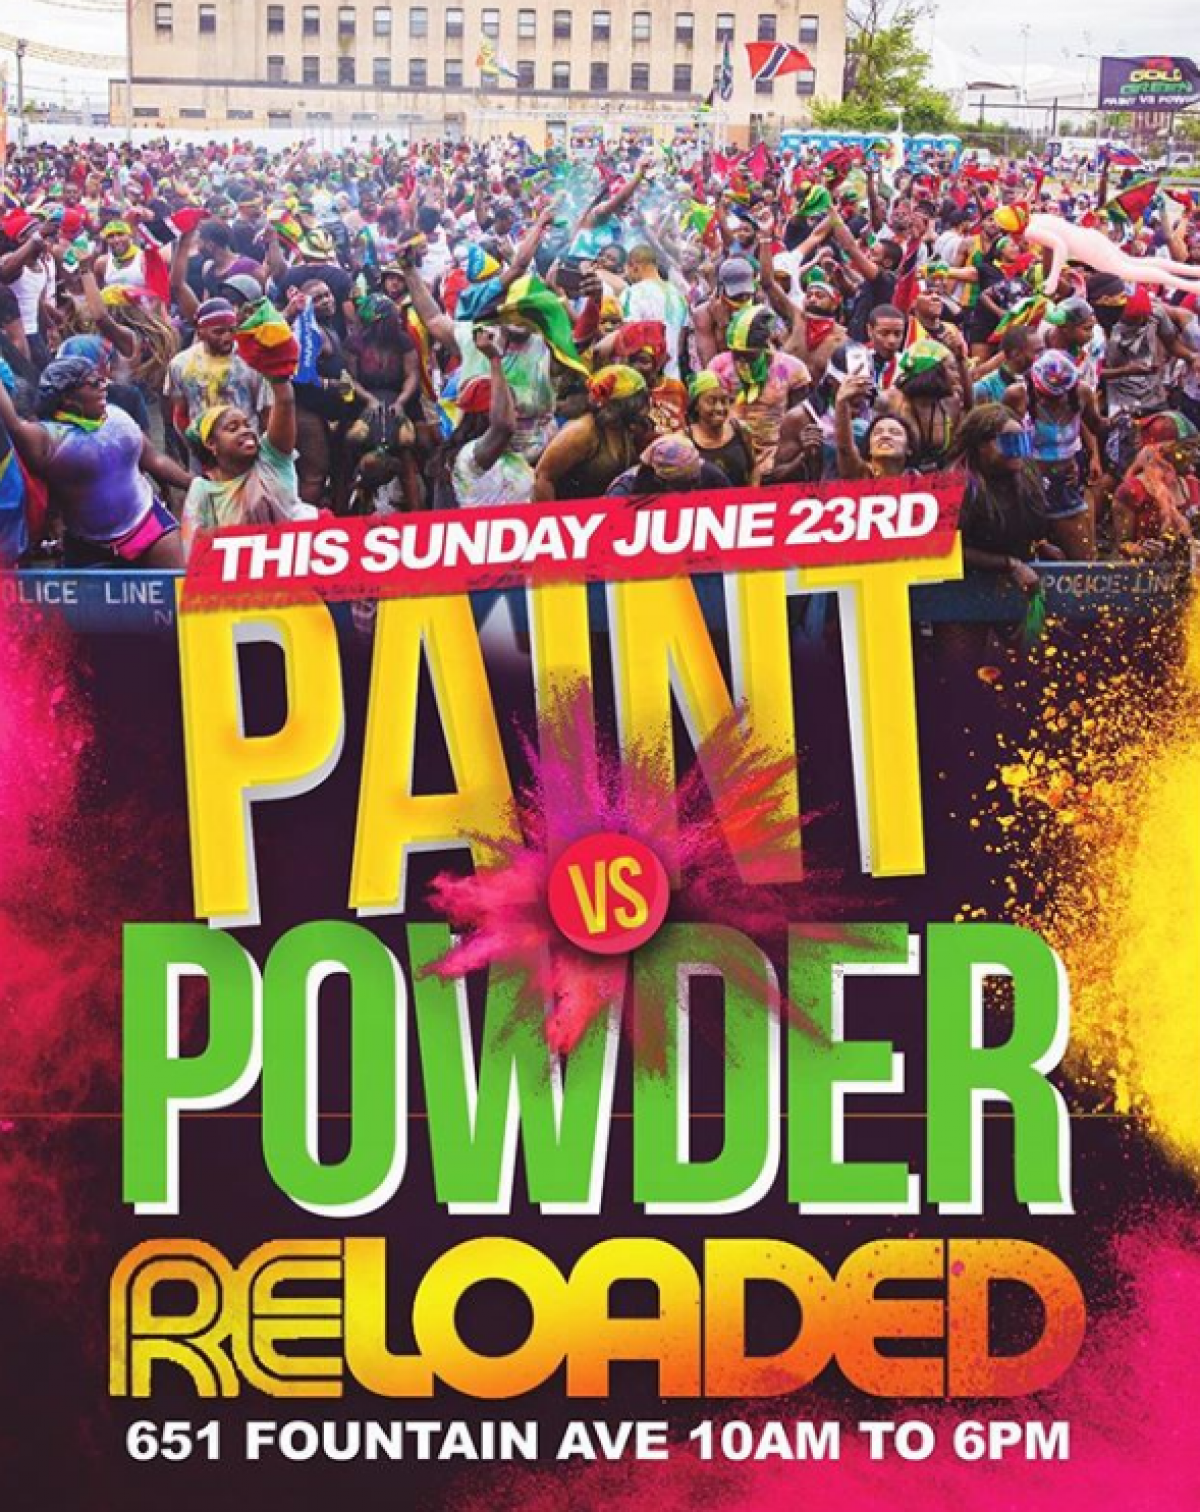 IGG Paint vs Powder flyer or graphic.